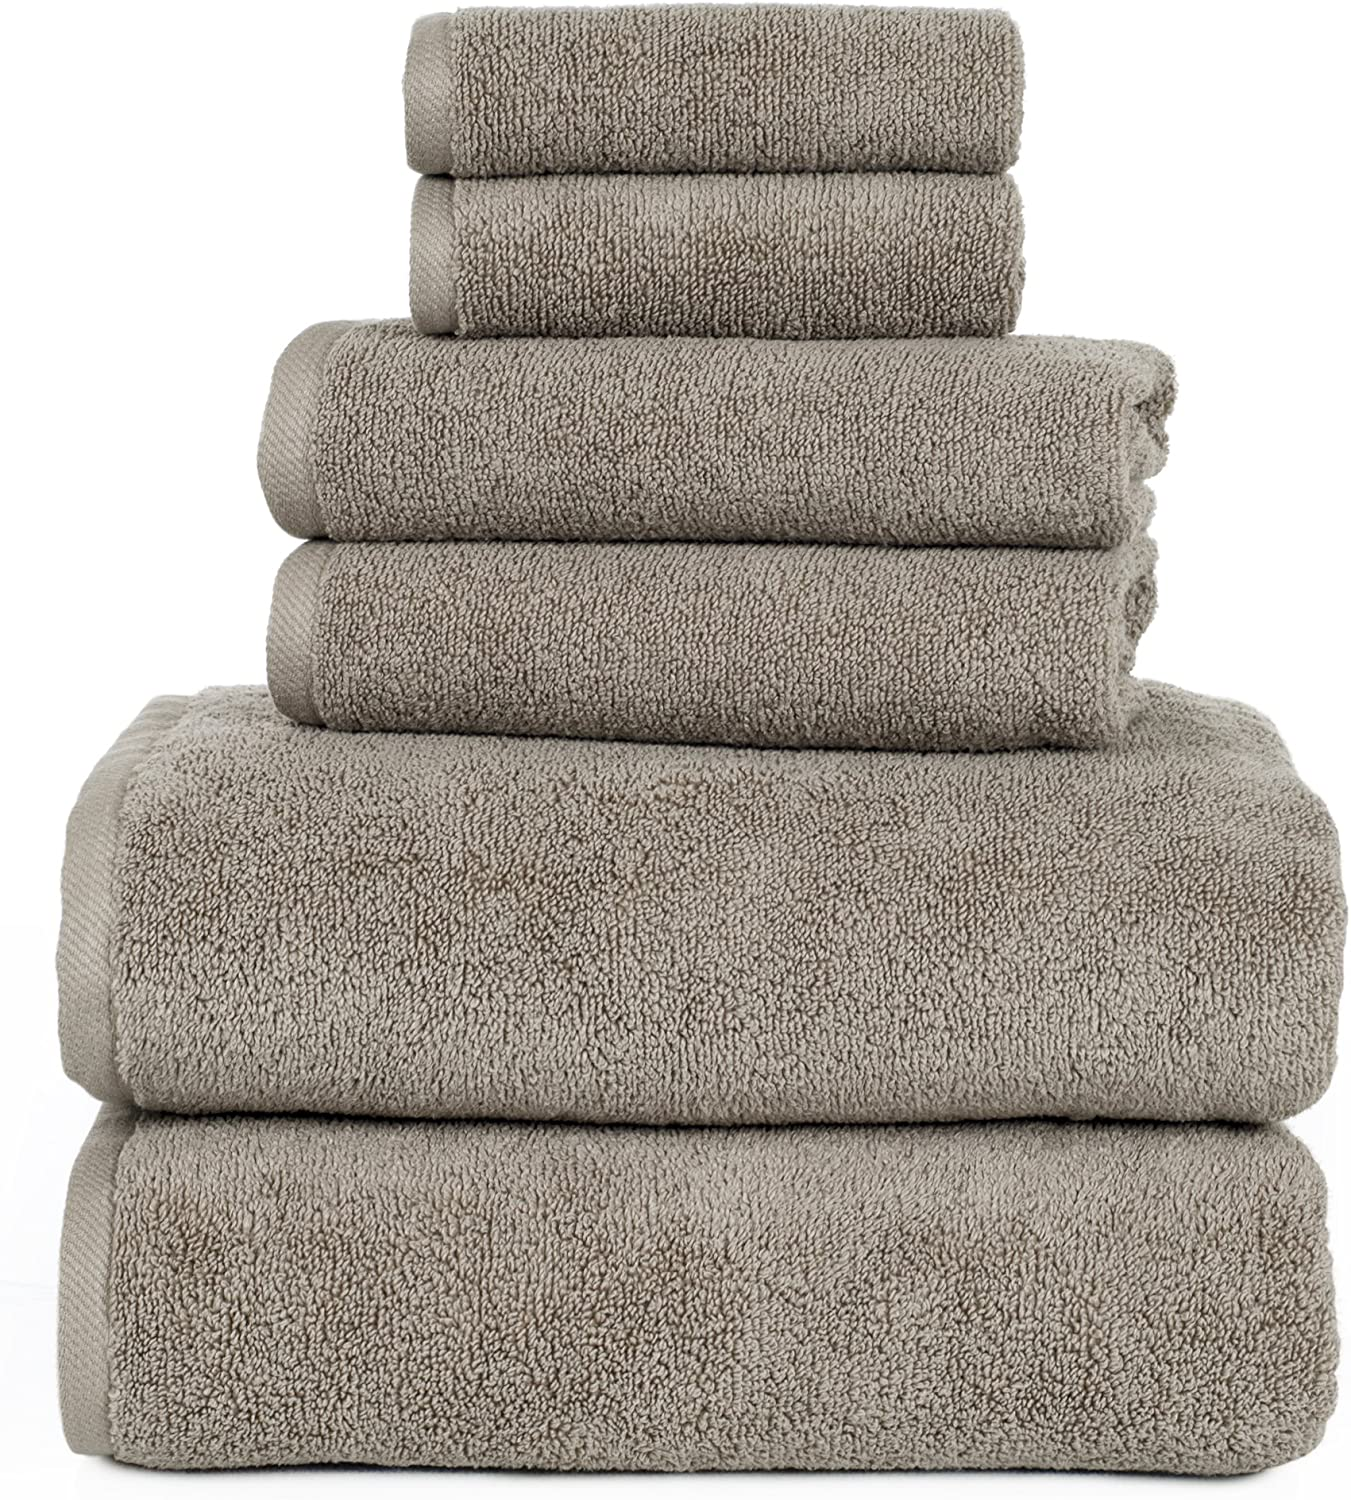 100 Percent Cotton Towel Set, Zero Twist, Soft and Absorbent 6 Piece Set With 2 Bath Towels, 2 Hand Towels and 2 Washcloths (Taupe) By Lavish Home